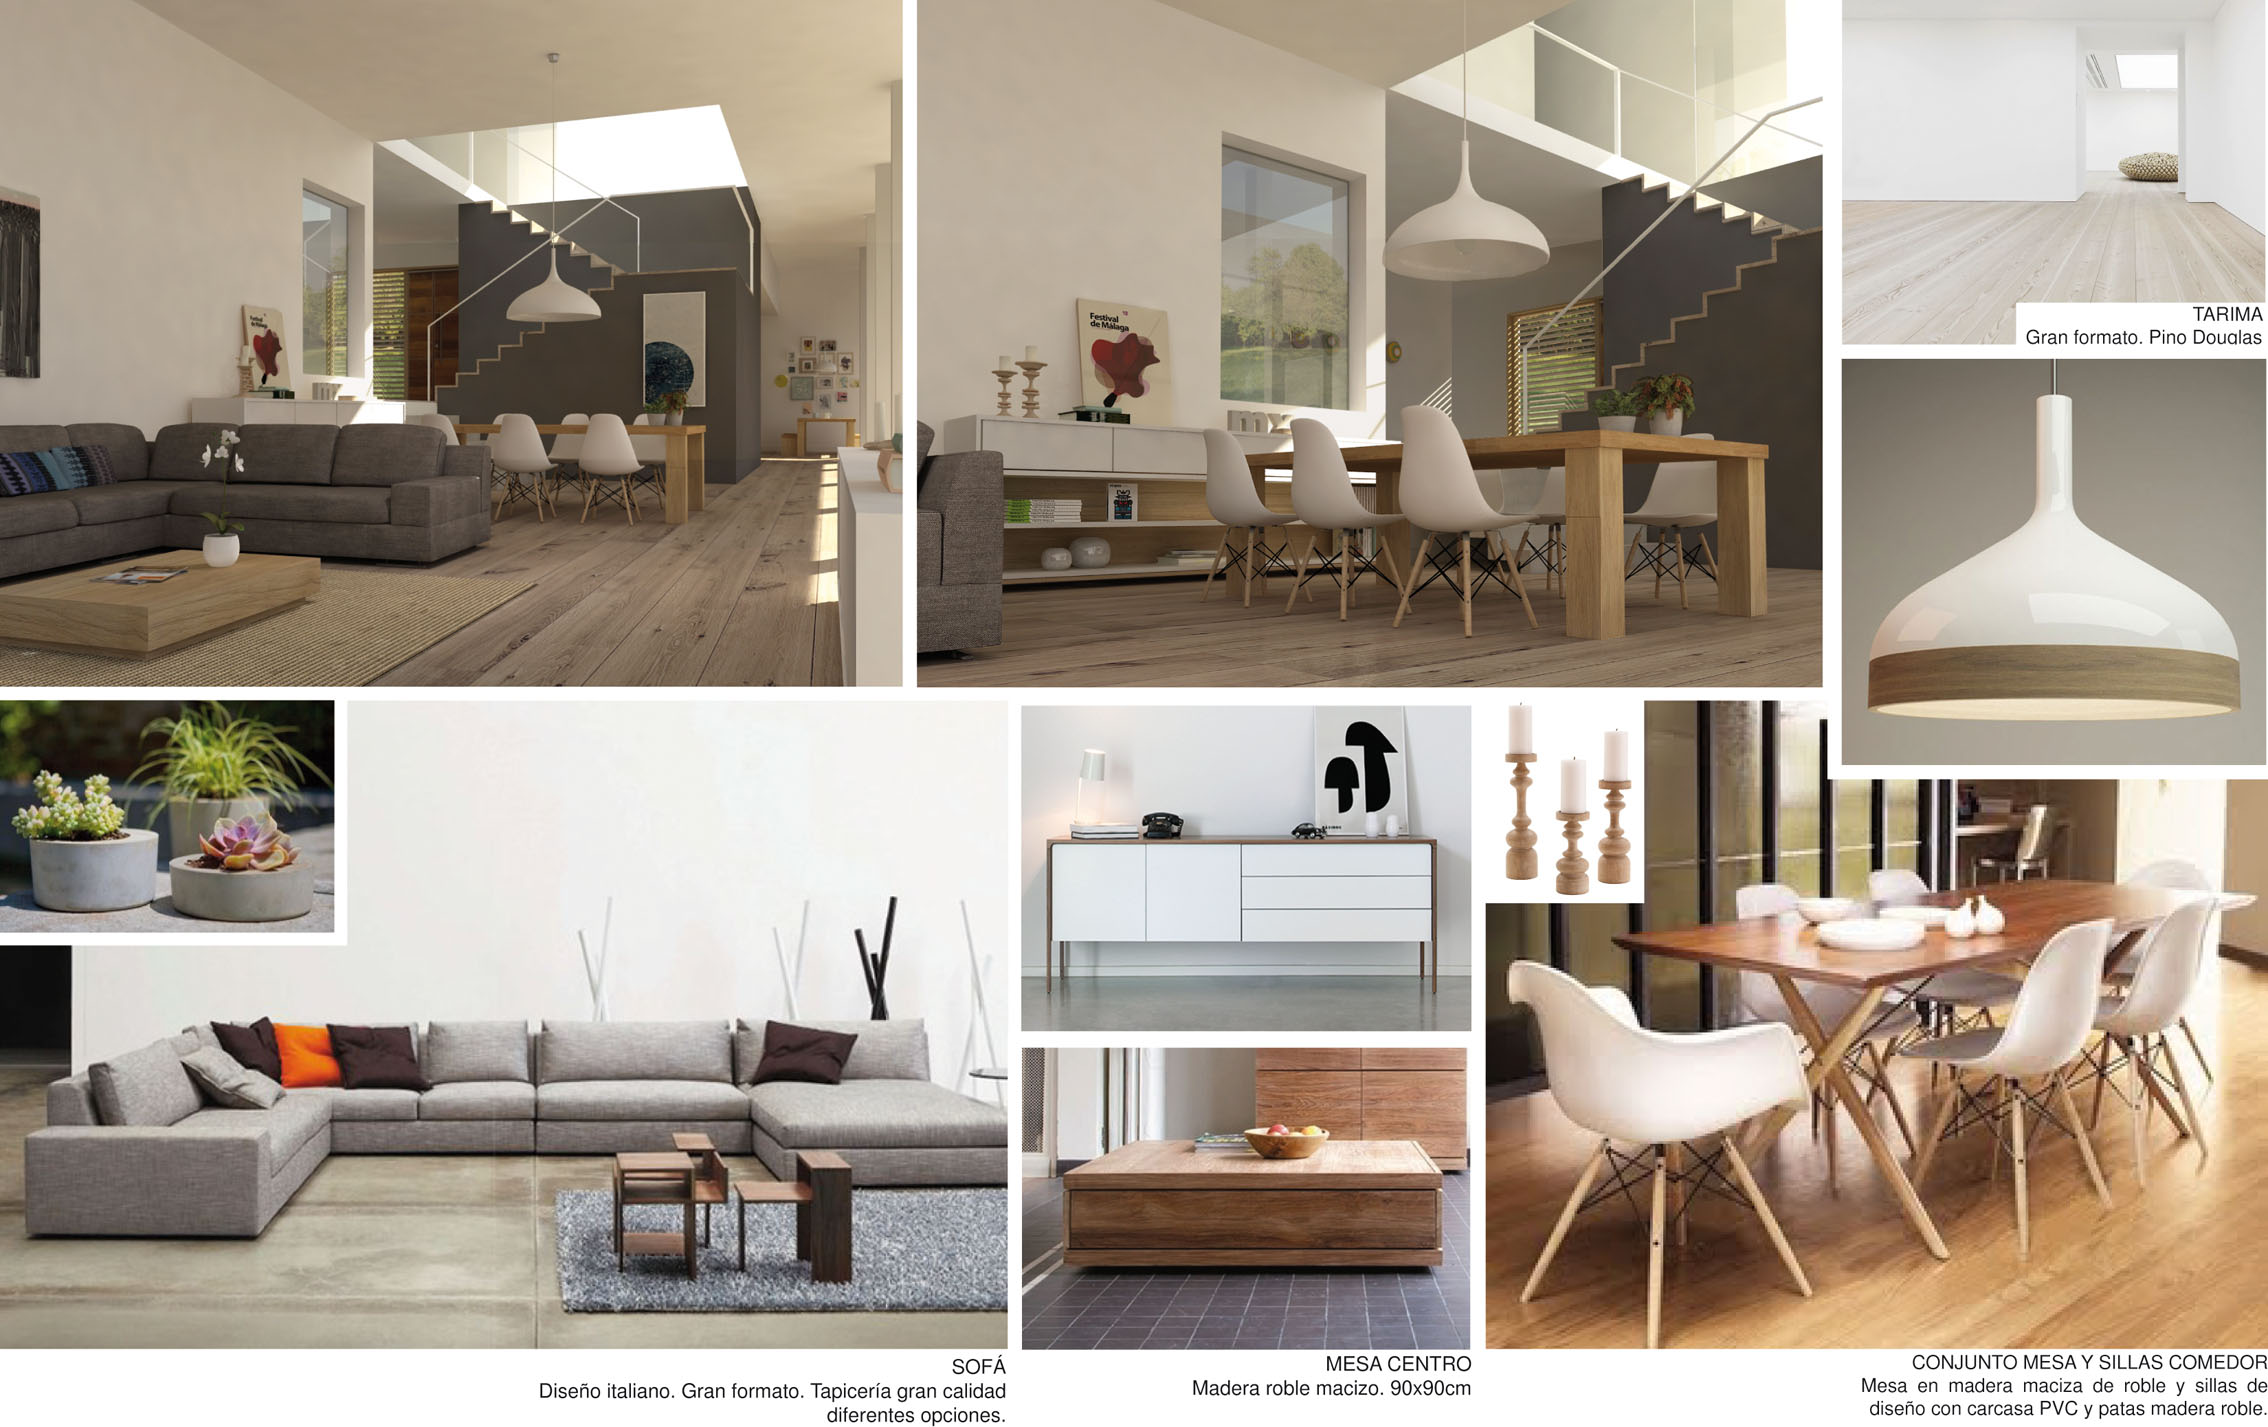 Blog m arquitectos for Decoracion de viviendas